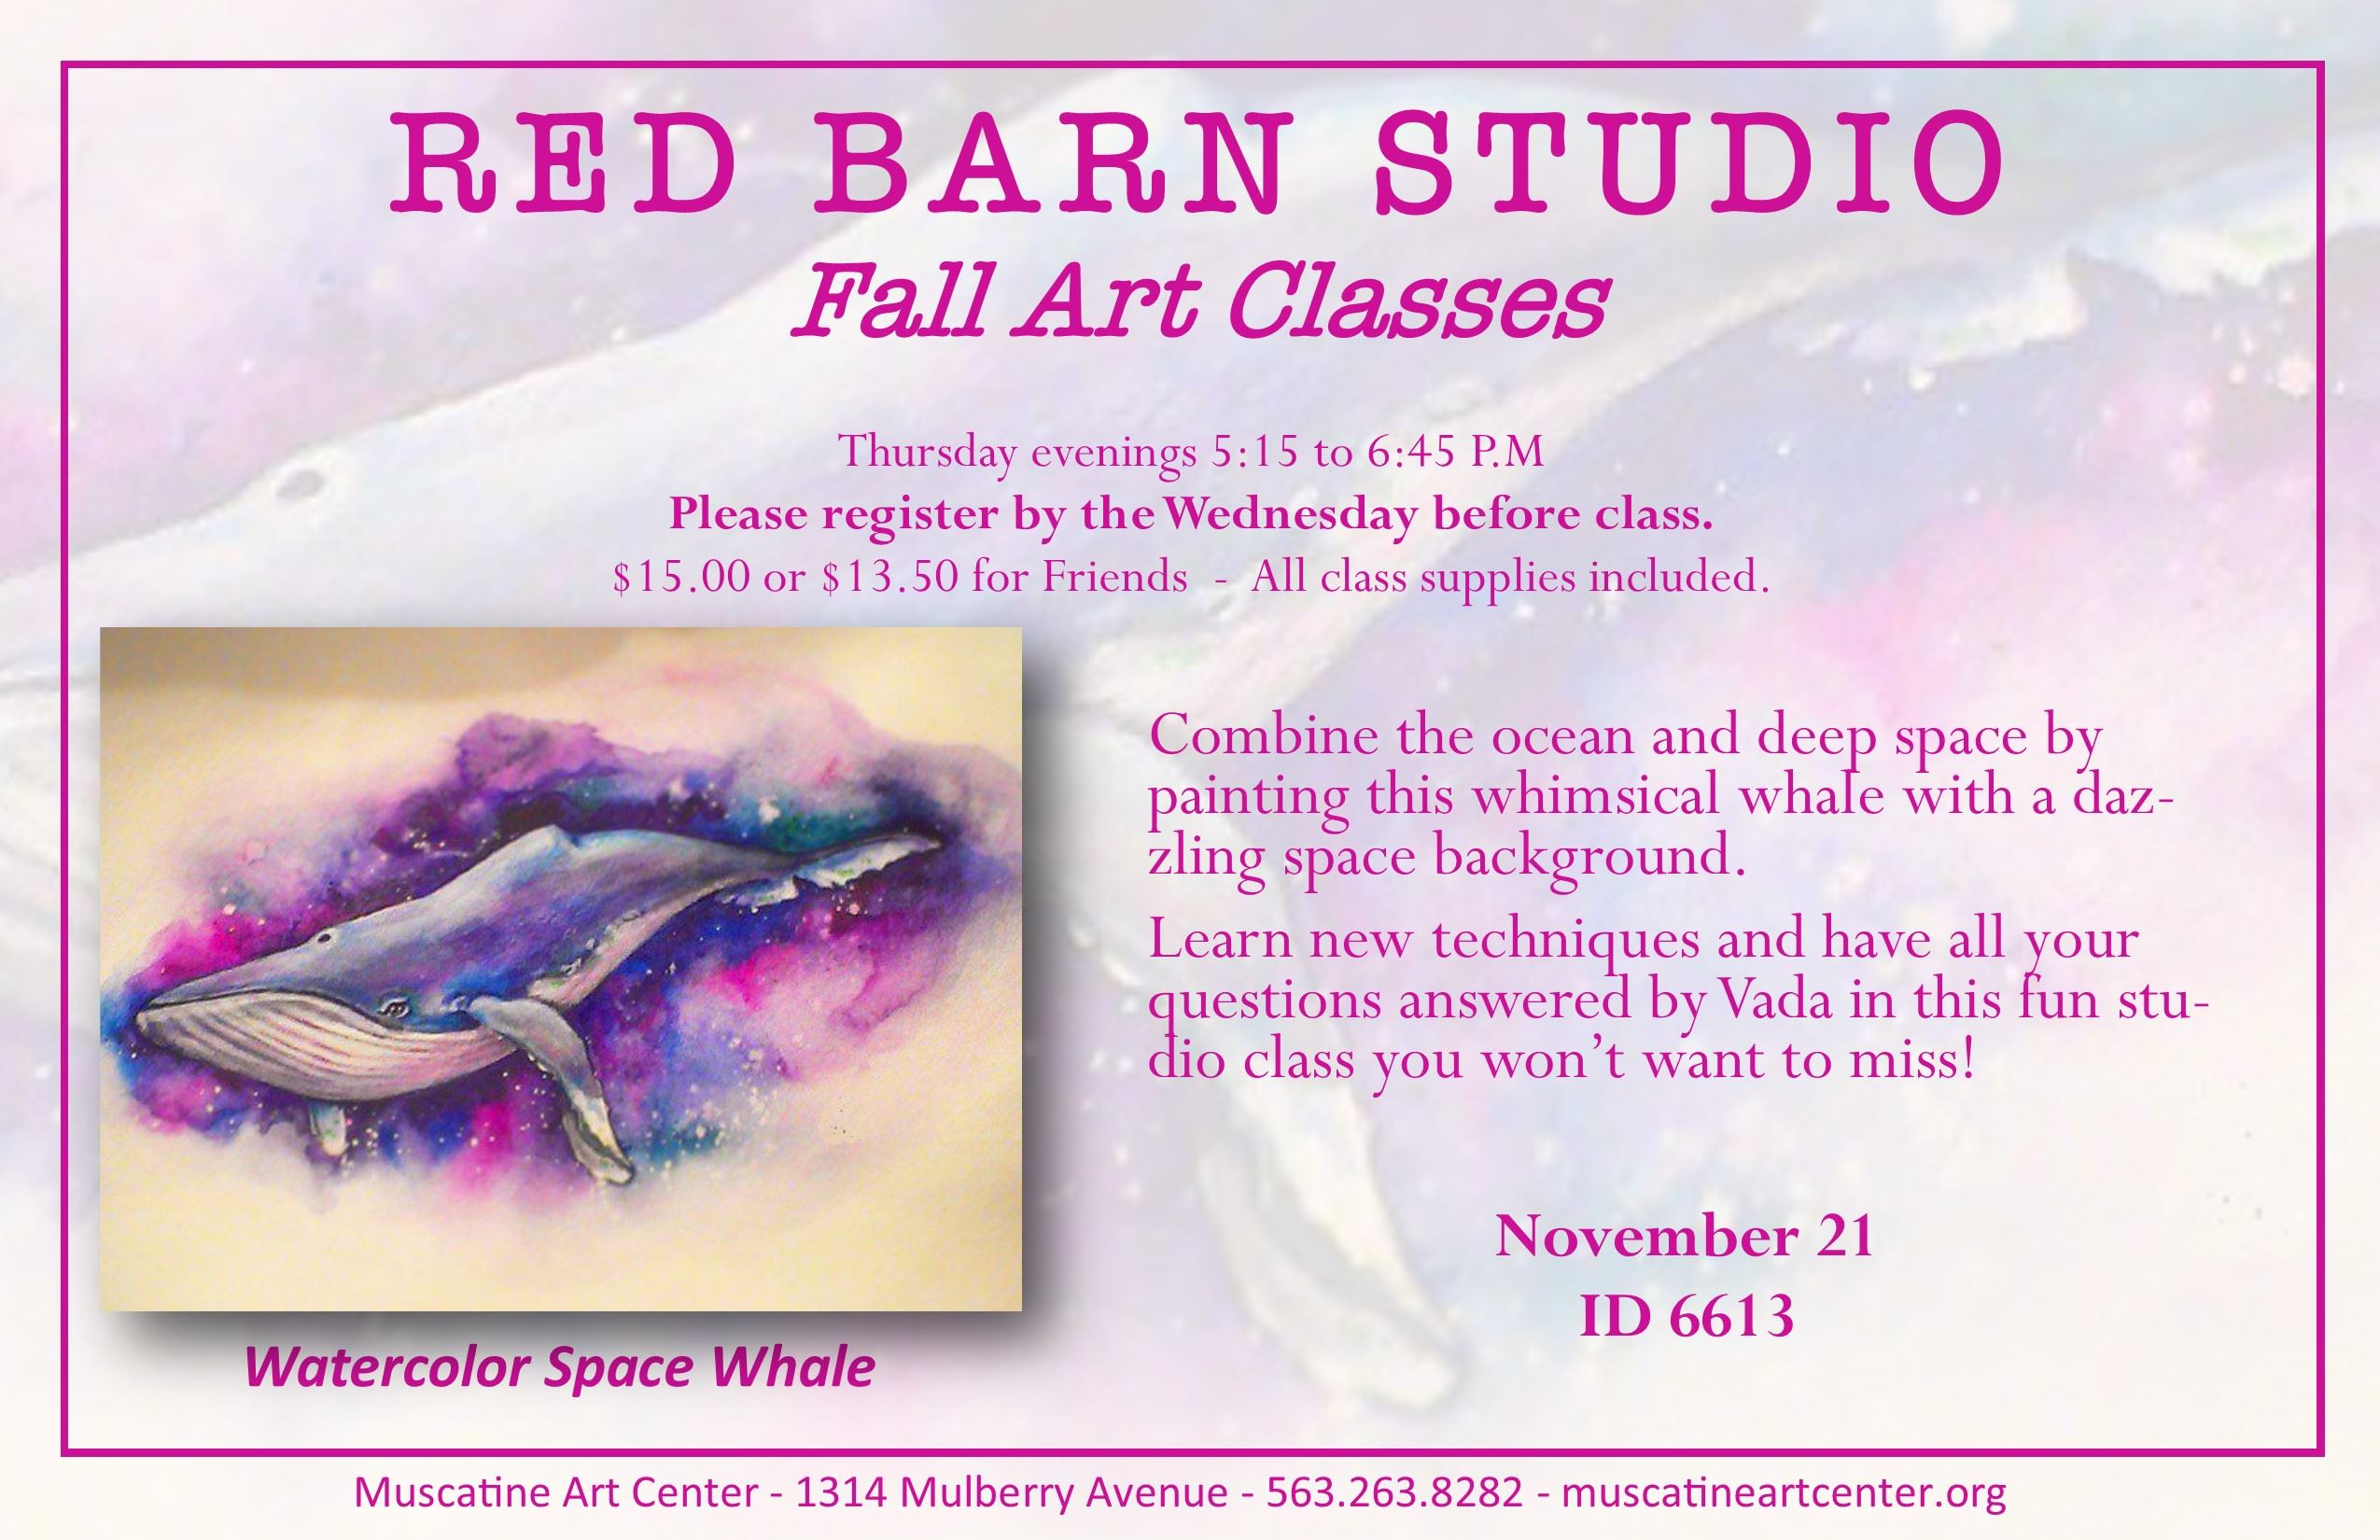 RBS - November 21 - Watercolor Space Whale